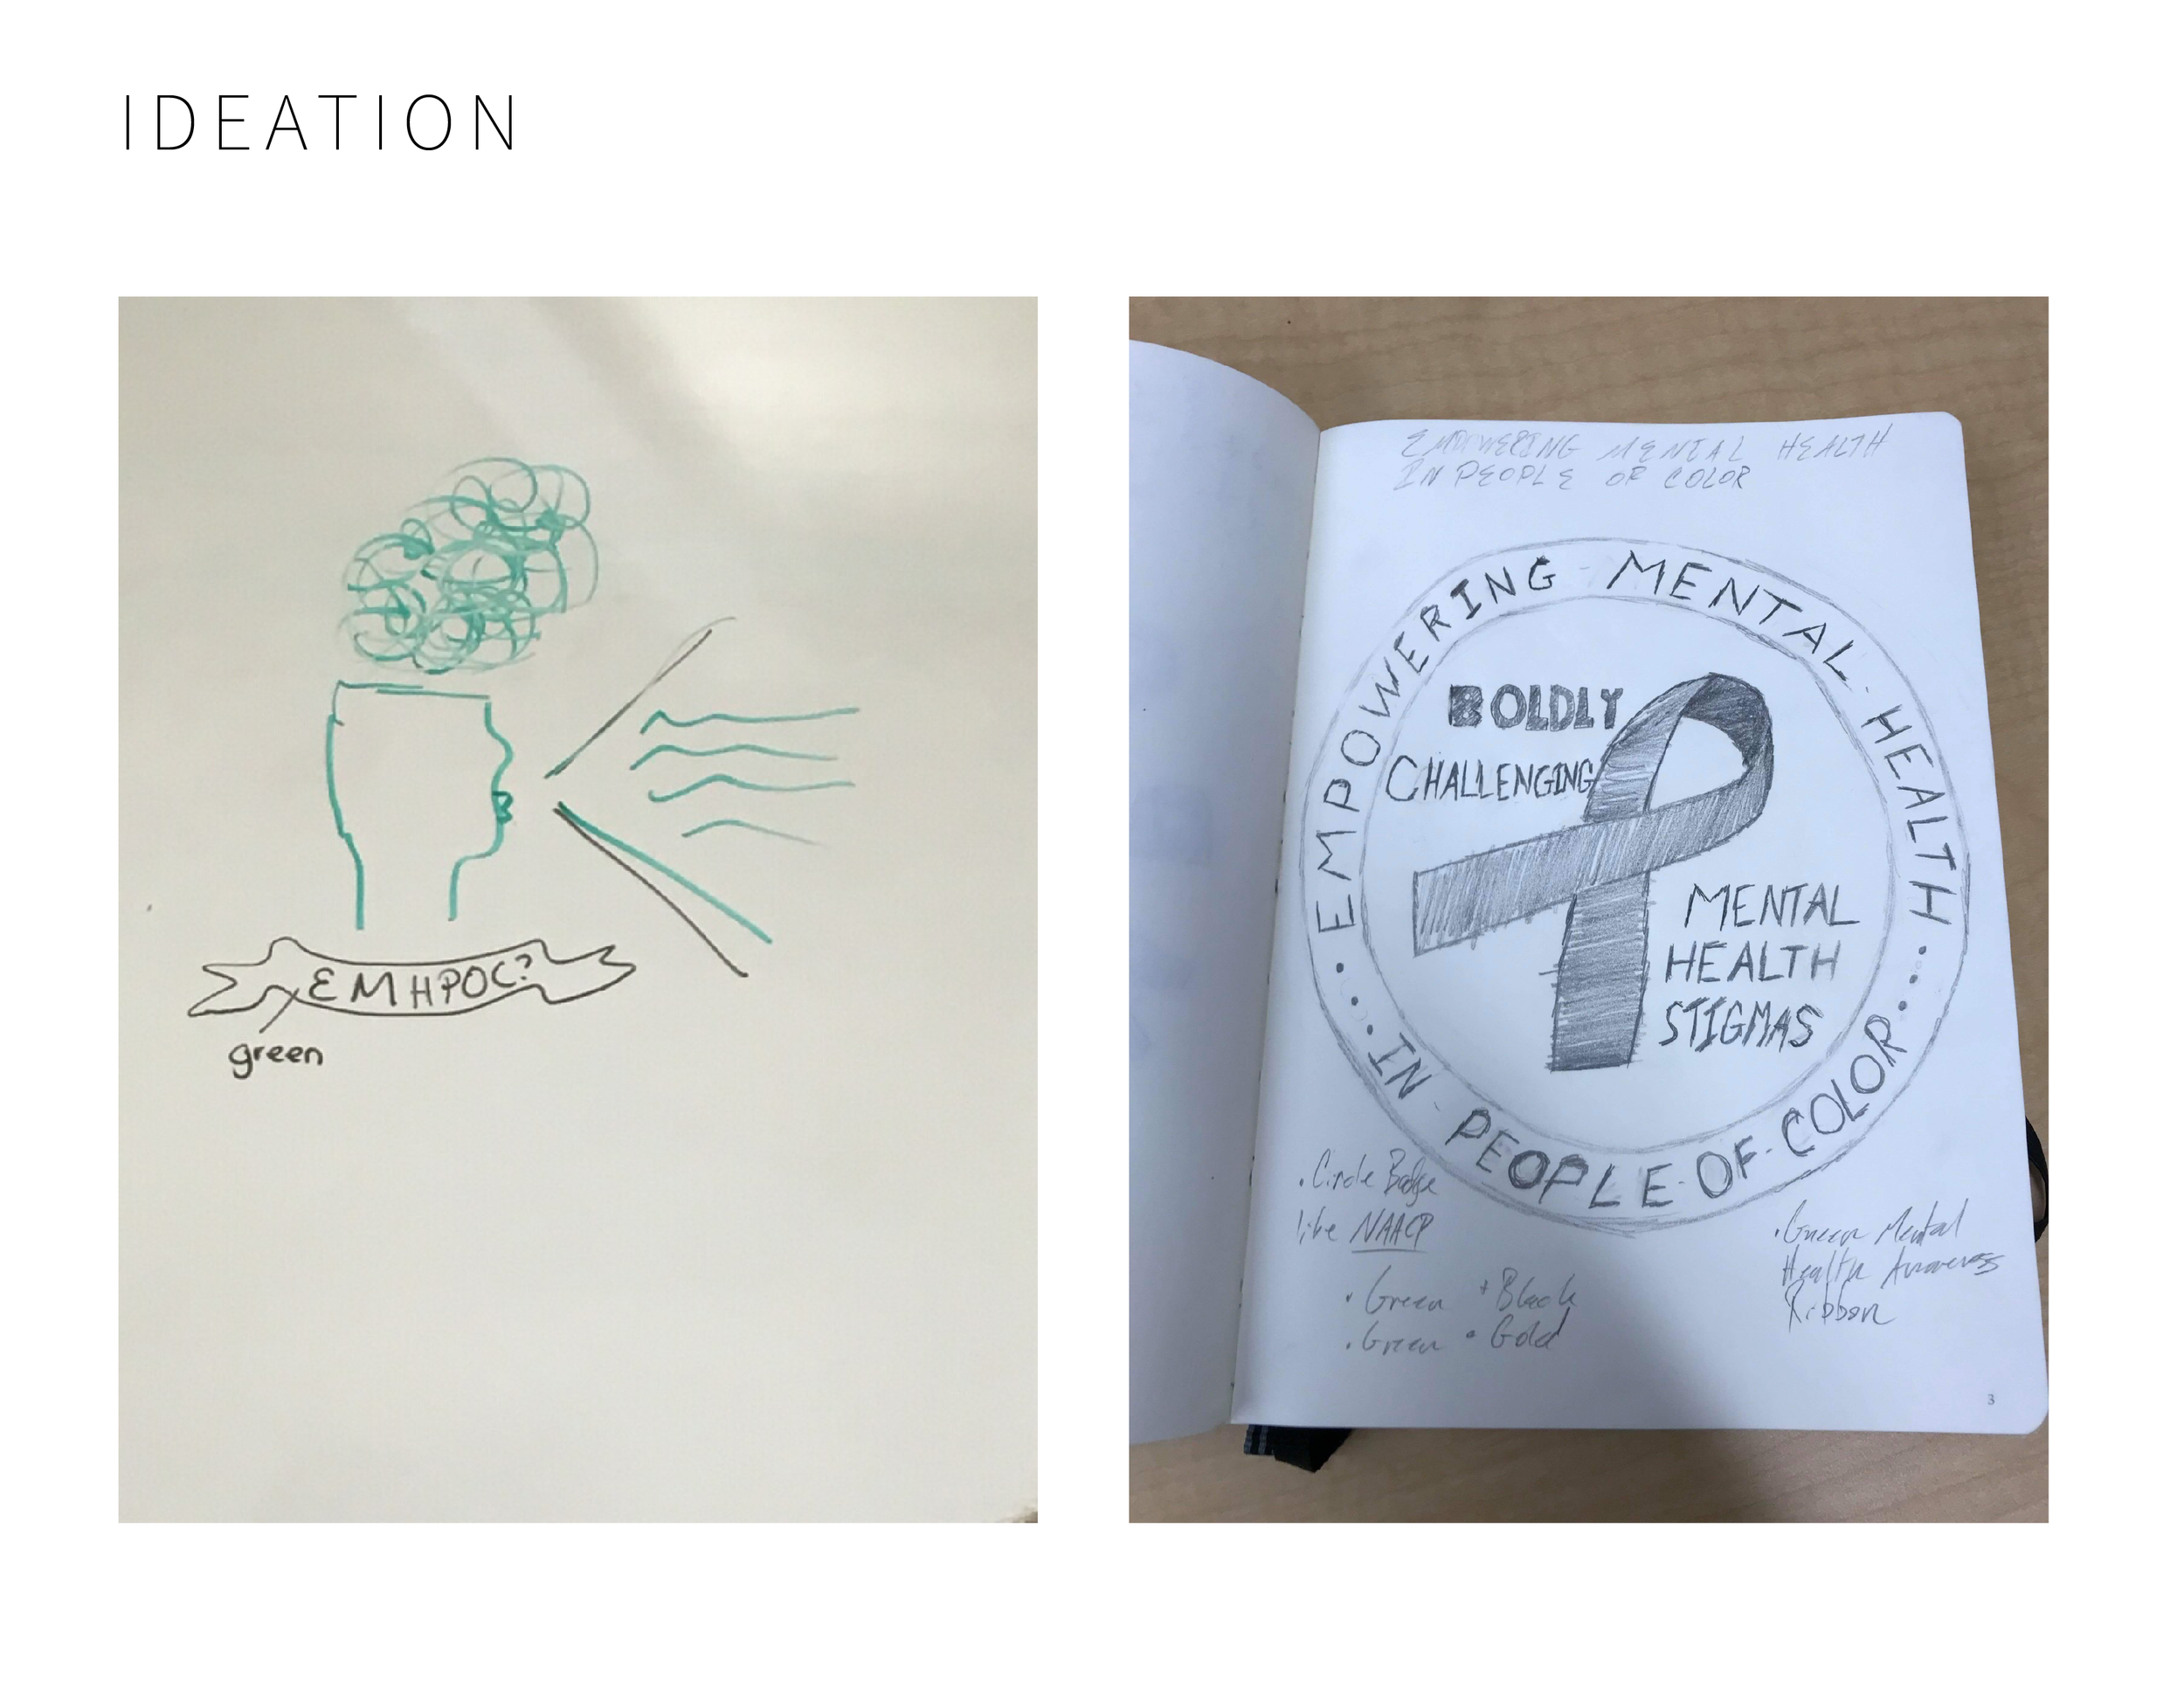 Illustrations given by the client for possible directions and messages the organization wanted their logo to embody.